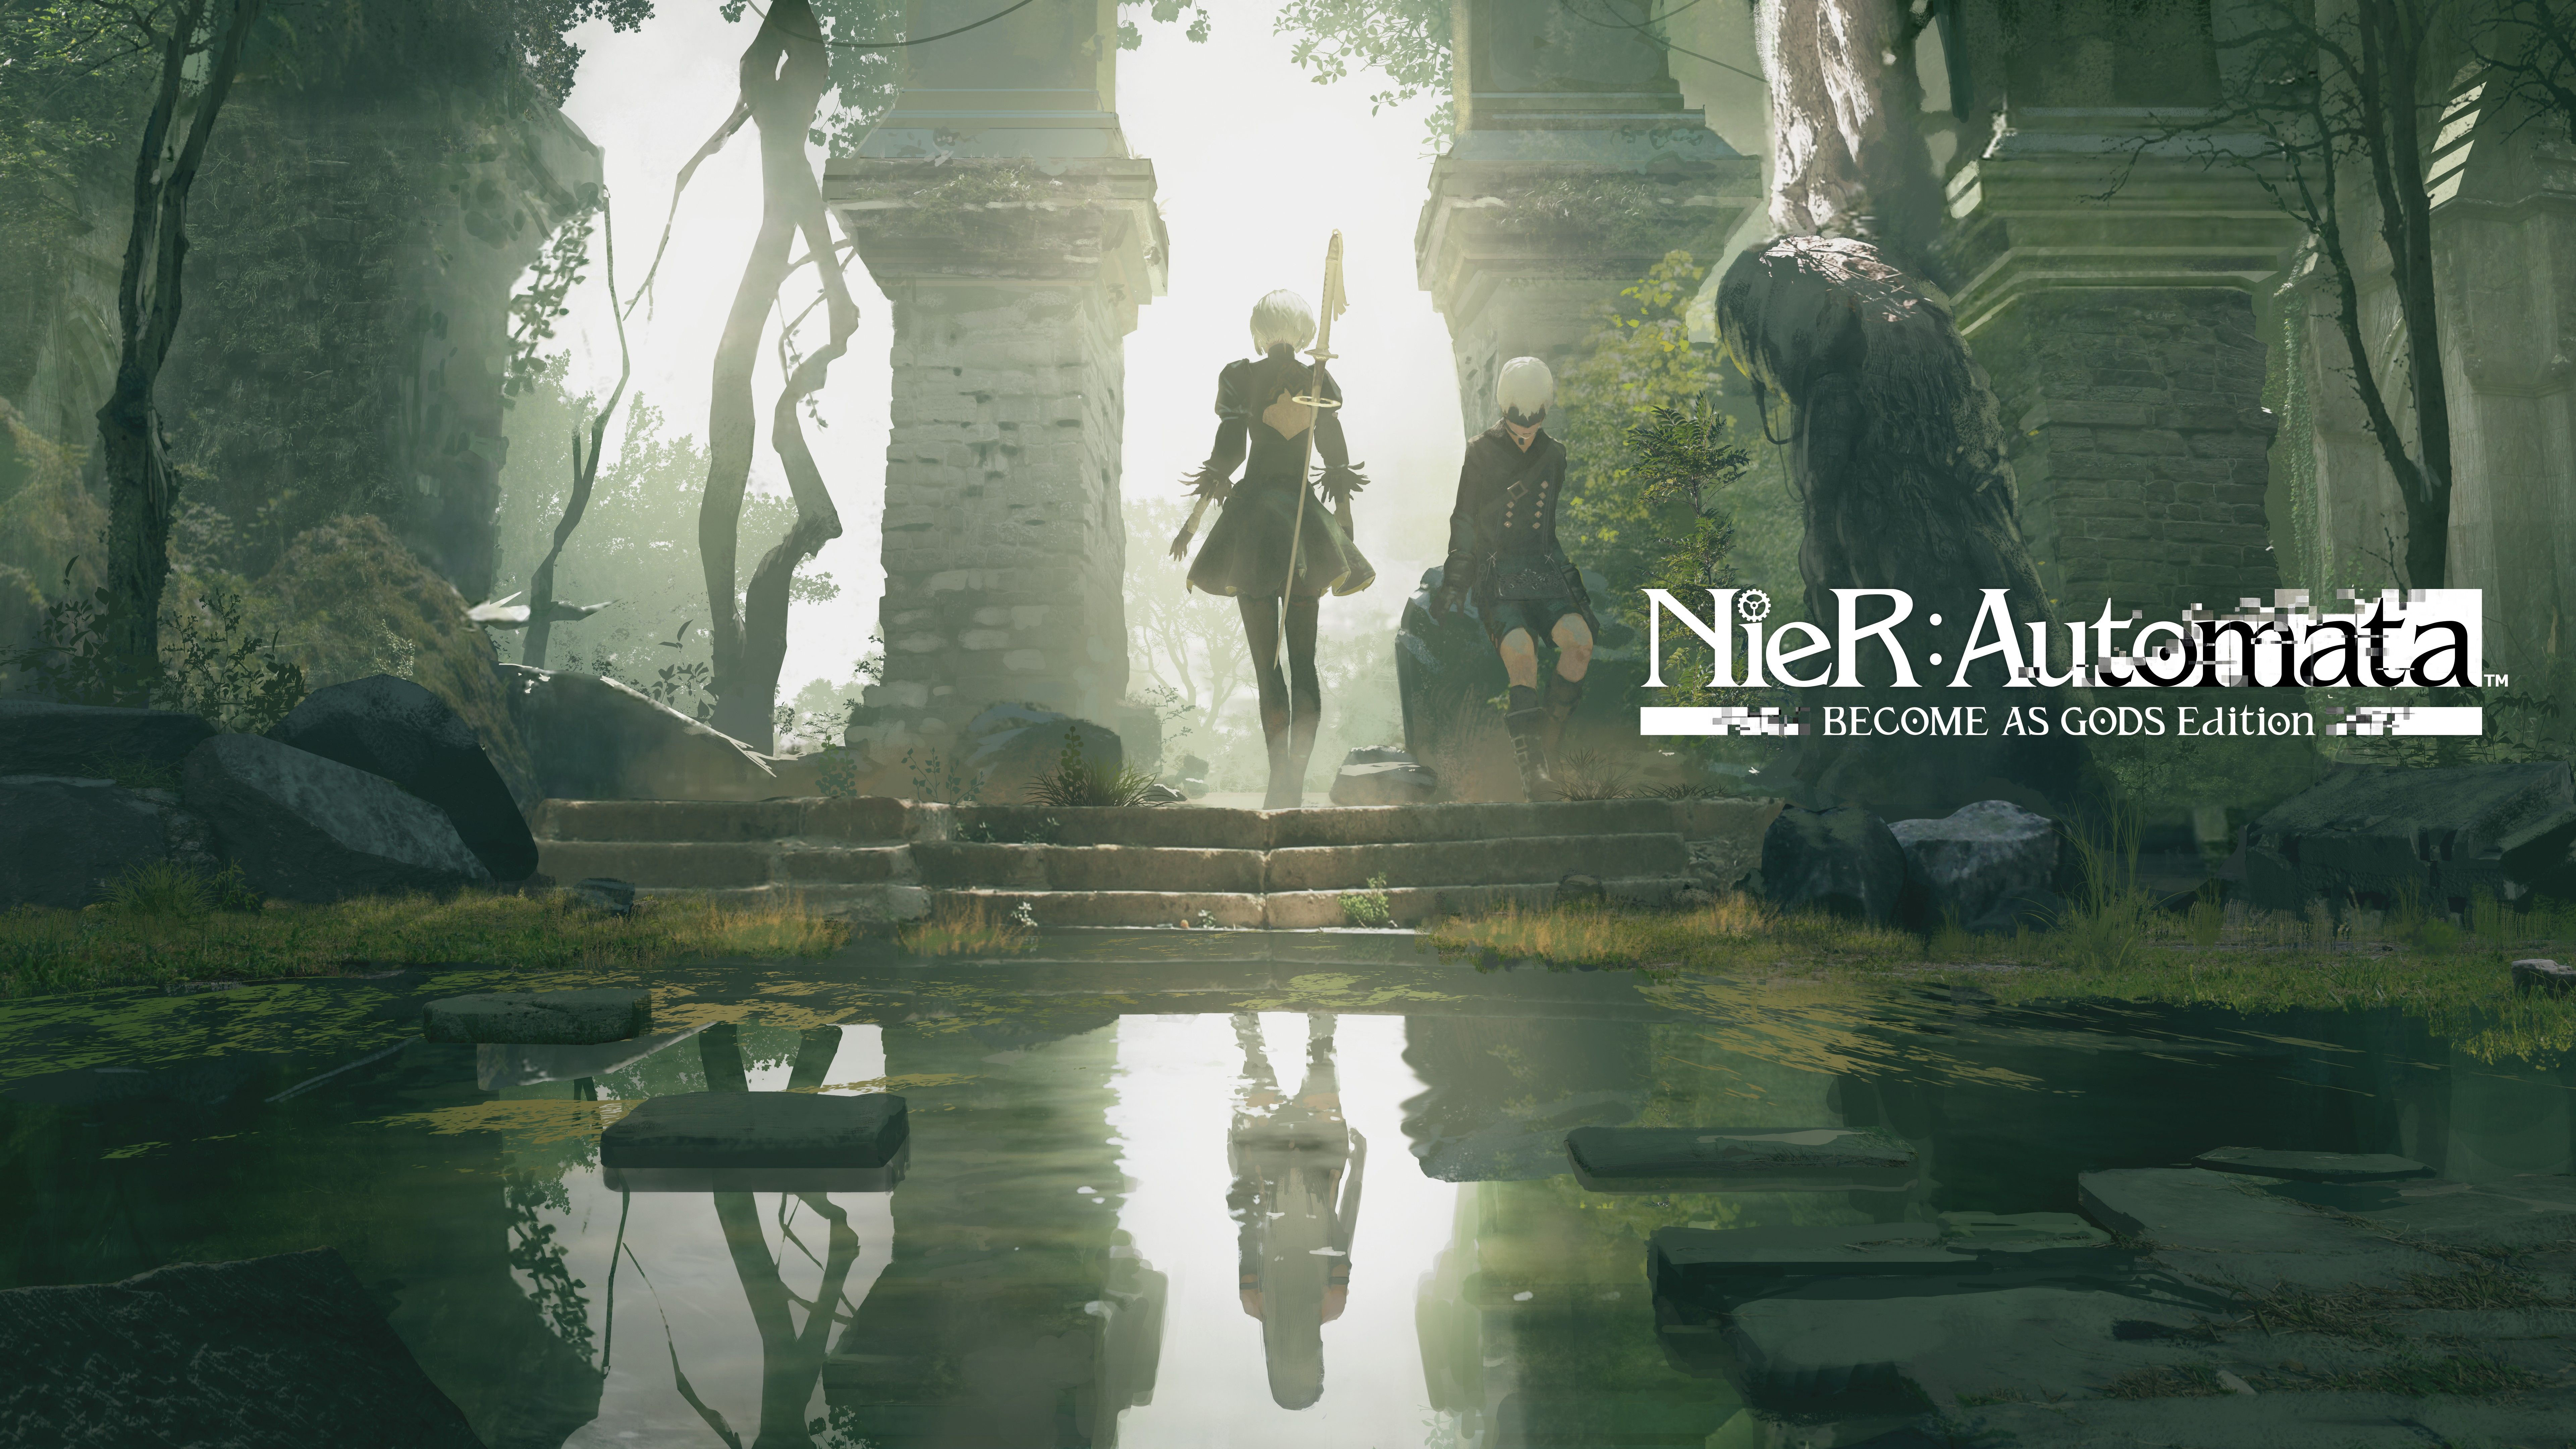 NieR Automata Become As Gods Edition 4K 8K Wallpapers HD